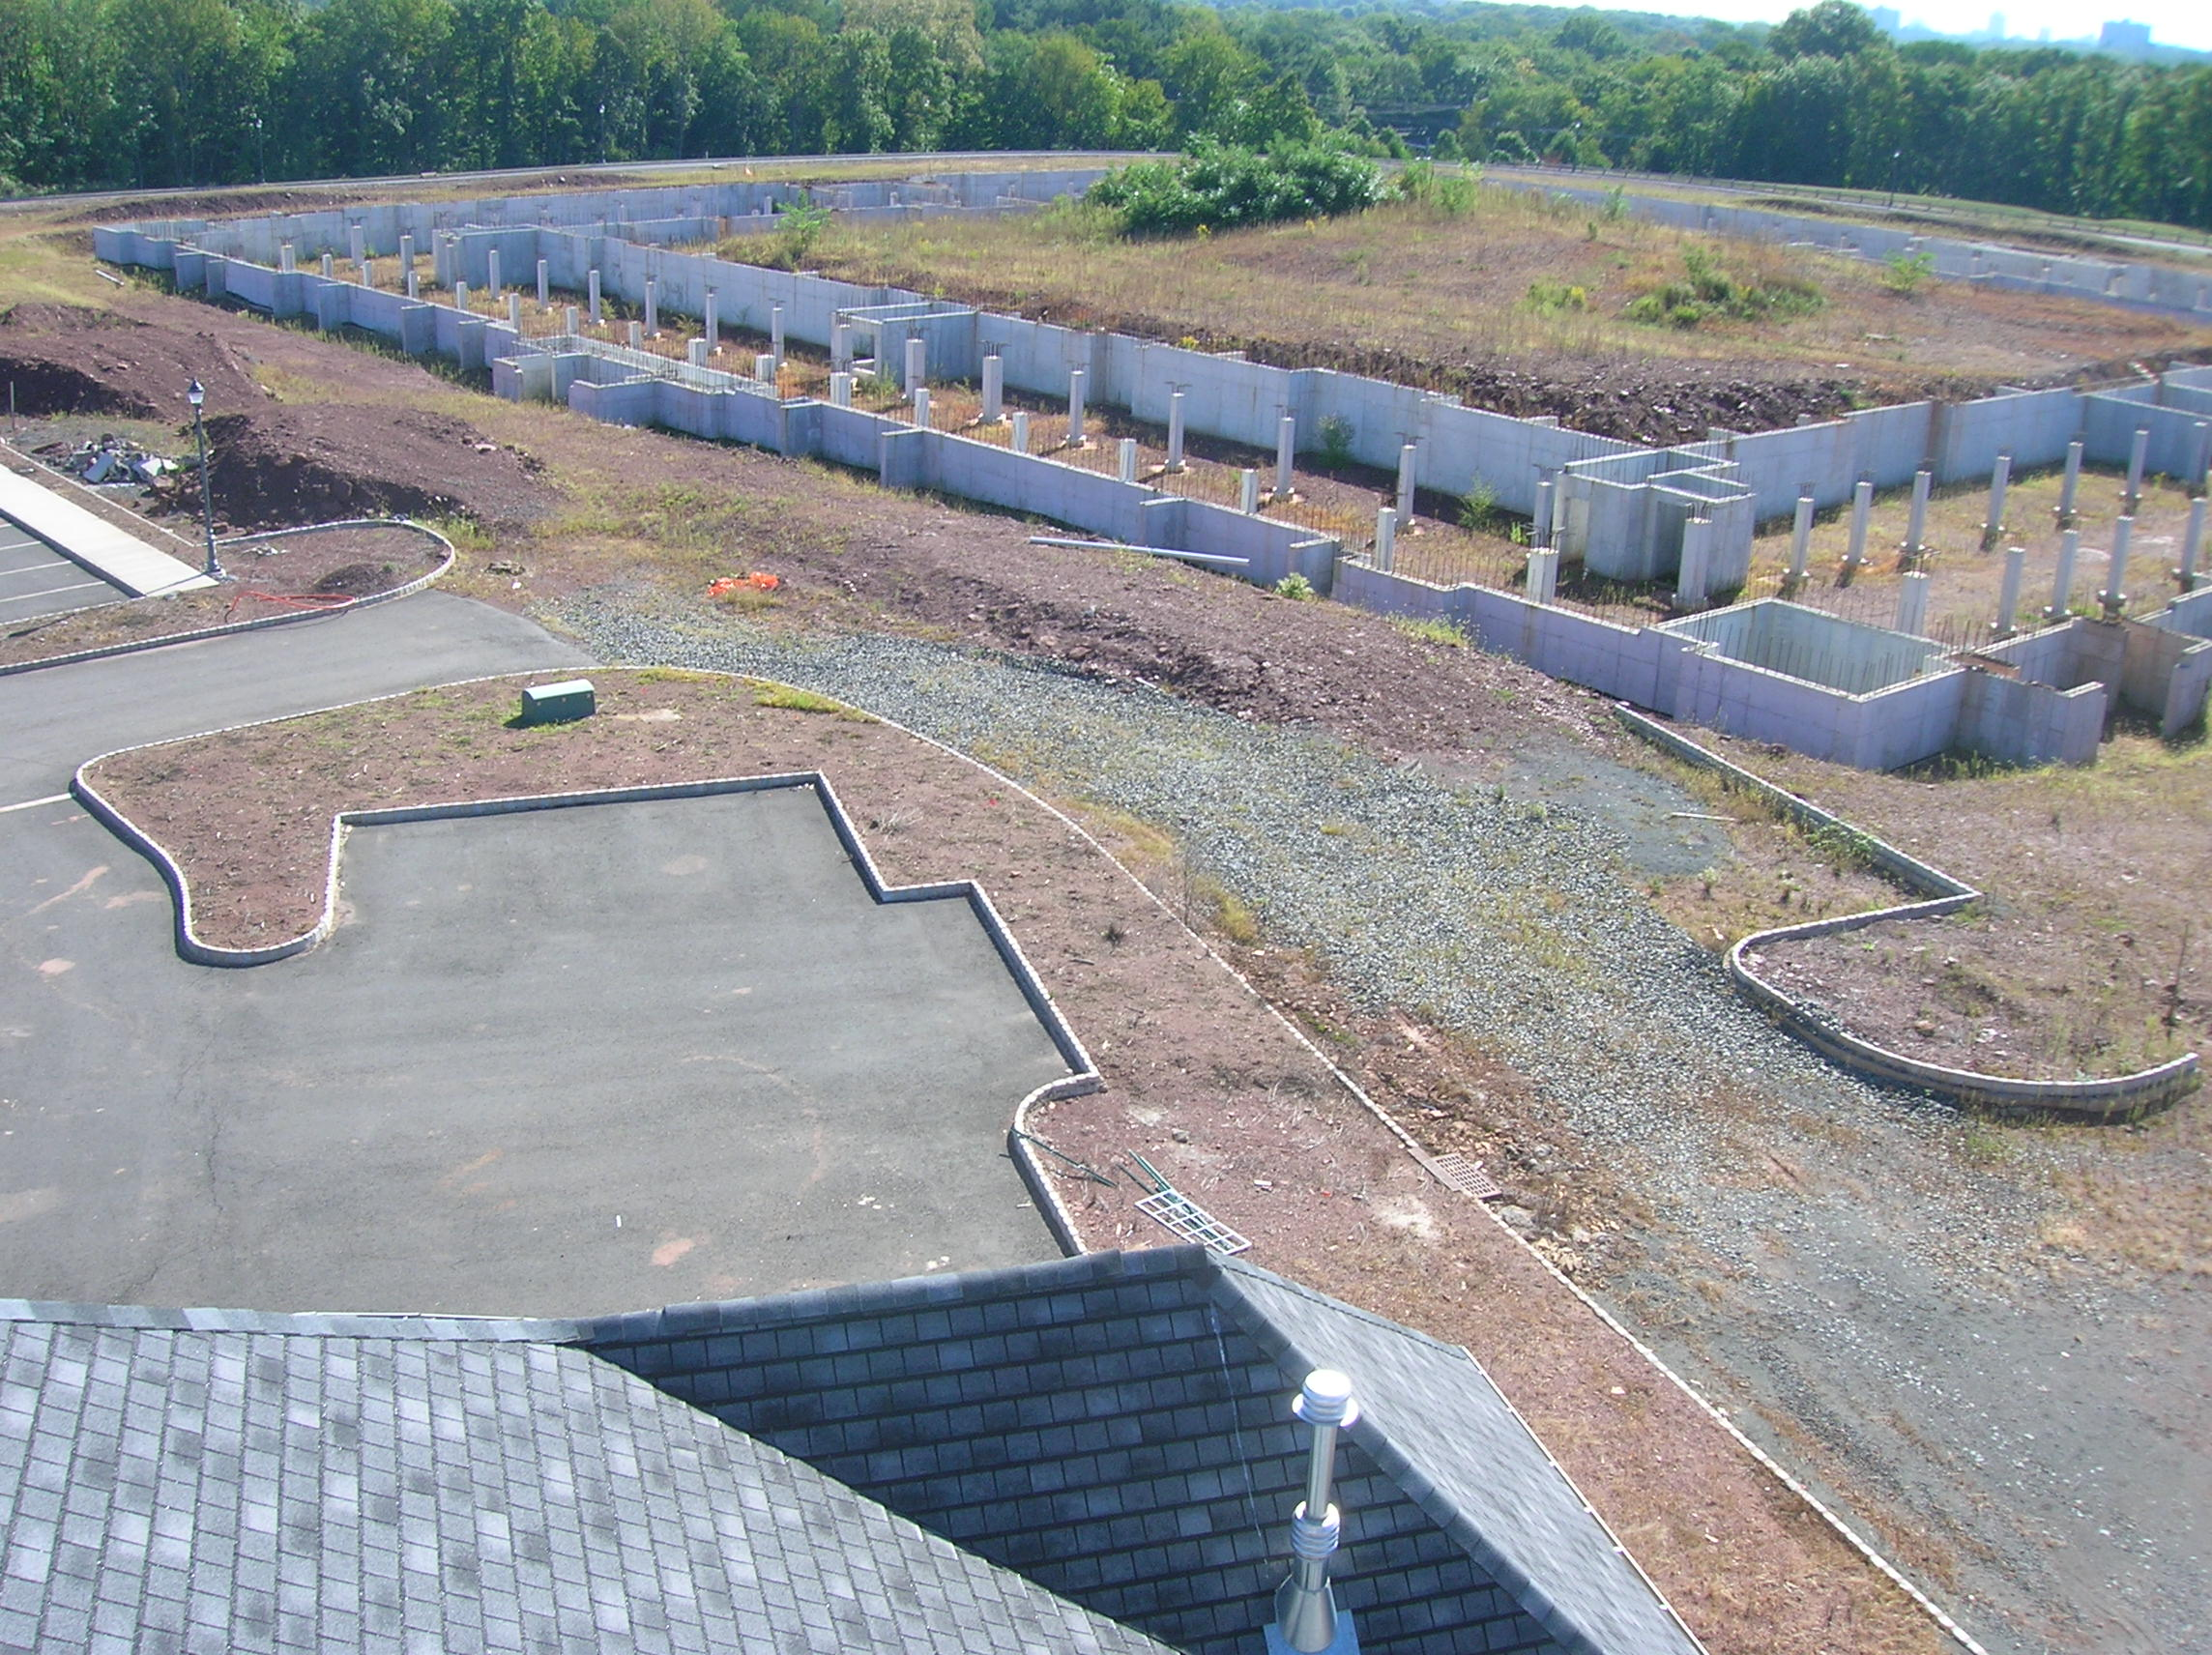 A picture from the roof of the single building built on the site by 2009 - the large shell of a community center